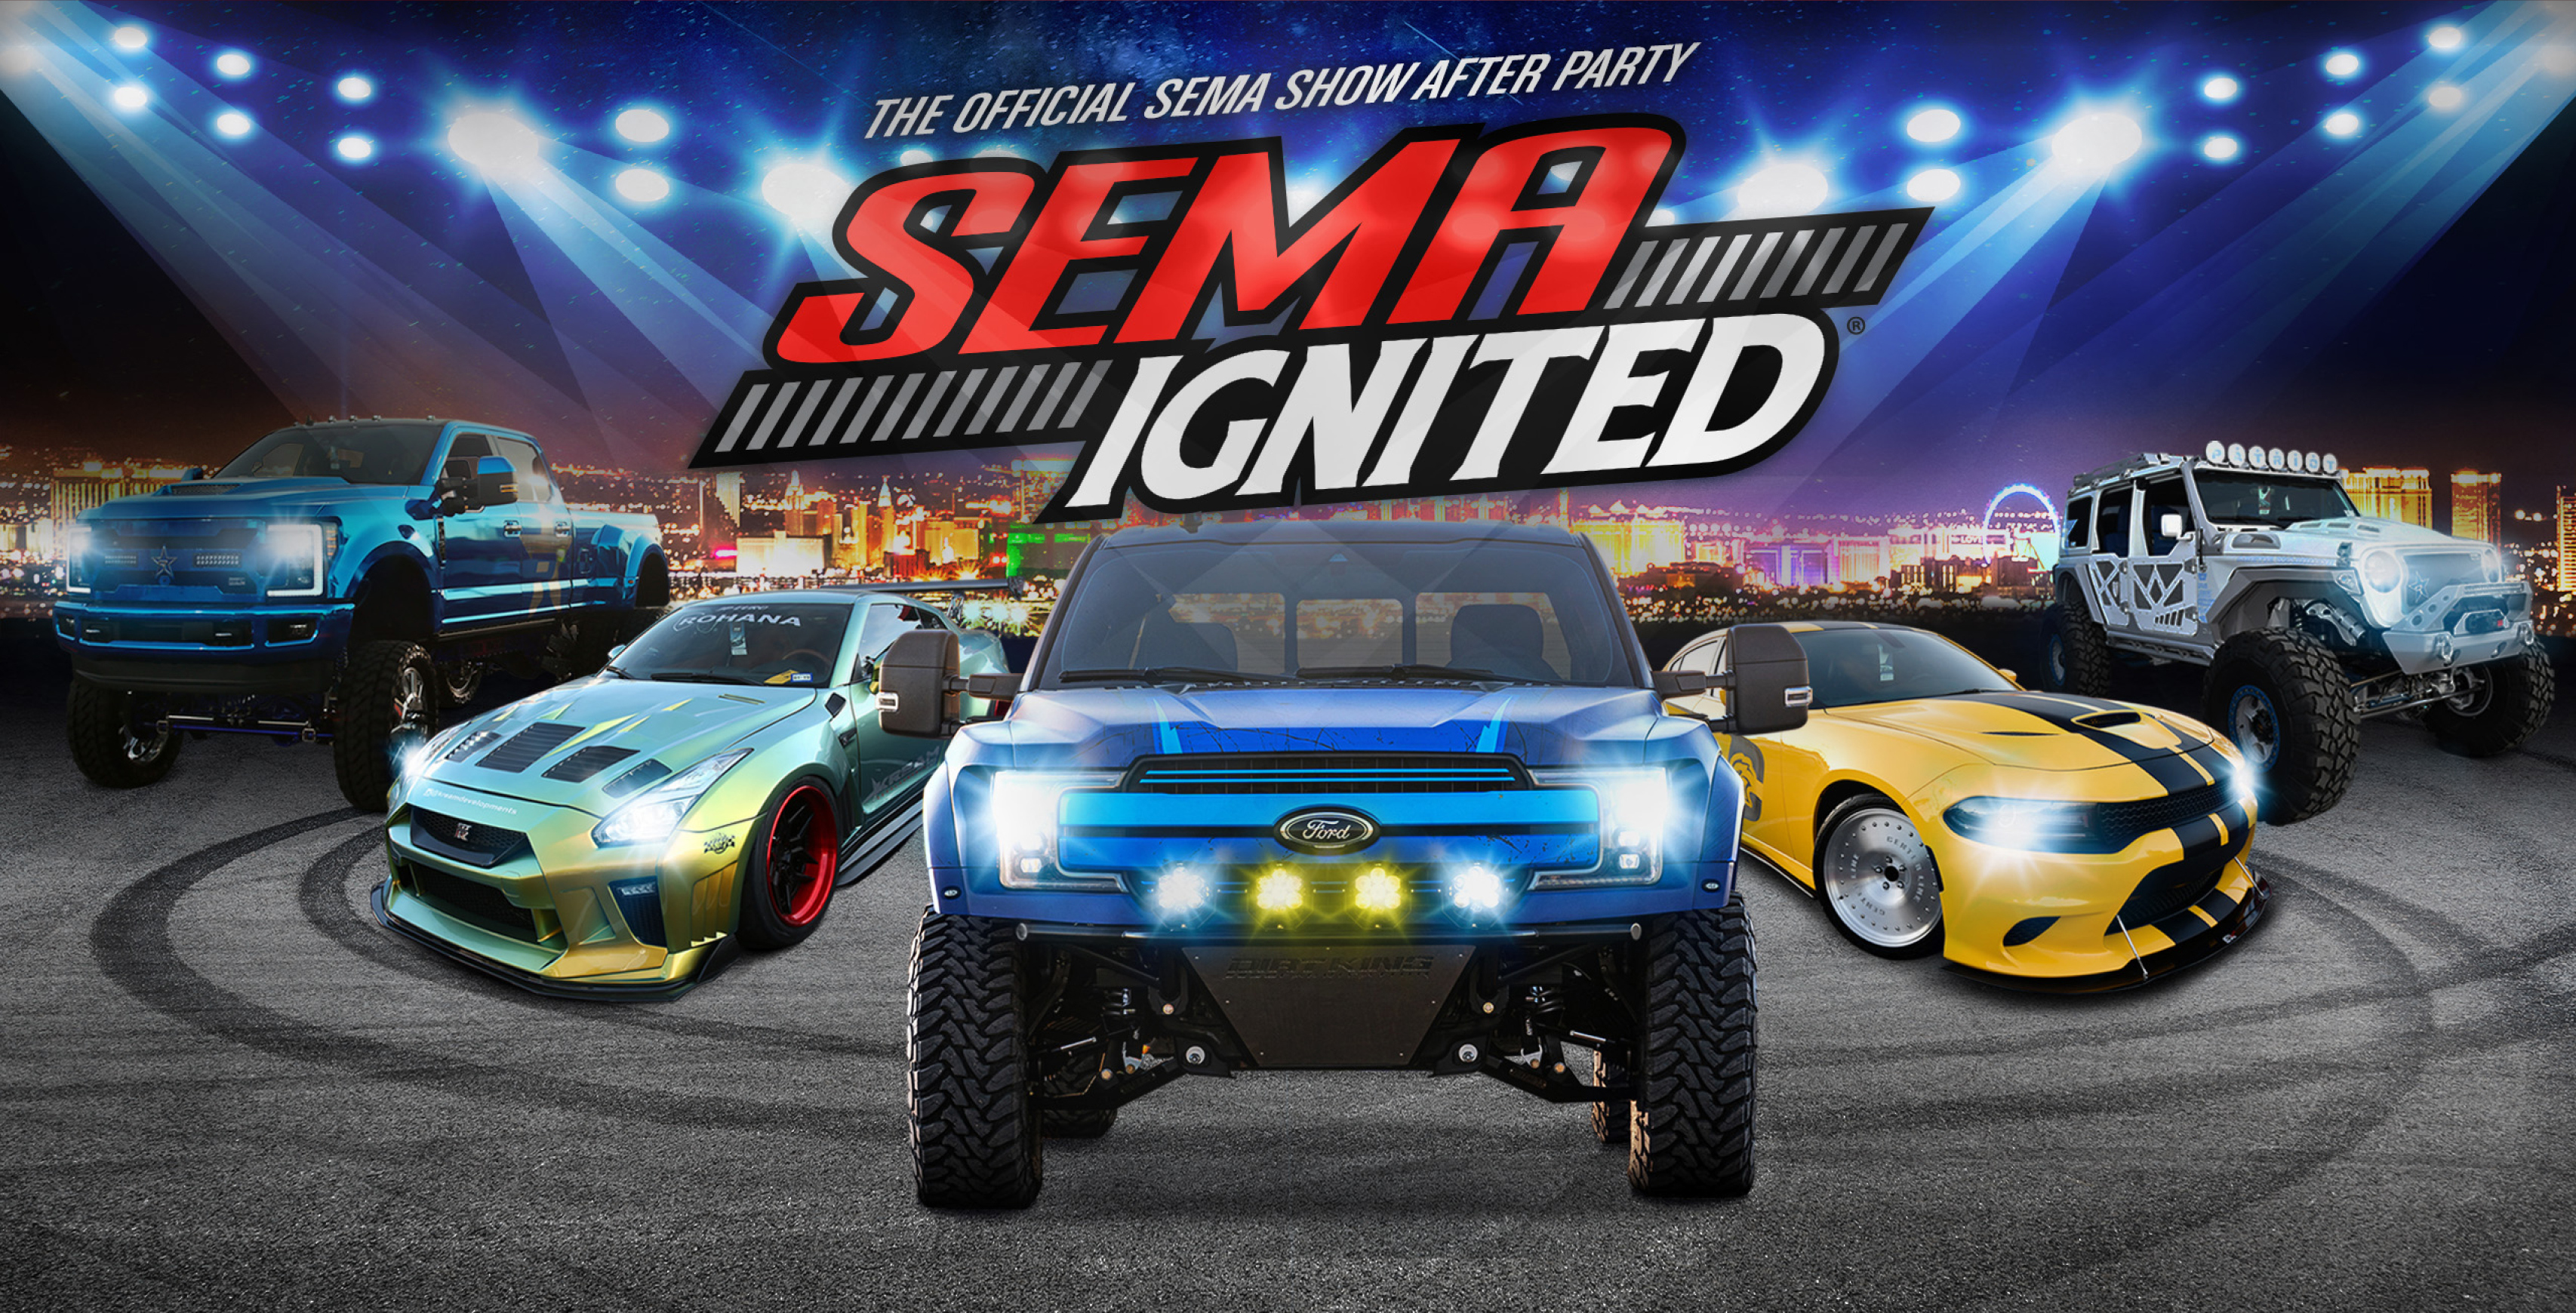 Halloween At Sema 2020 Parties SEMA IGNITED 2020 | The Official SEMA Show After Party | Friday